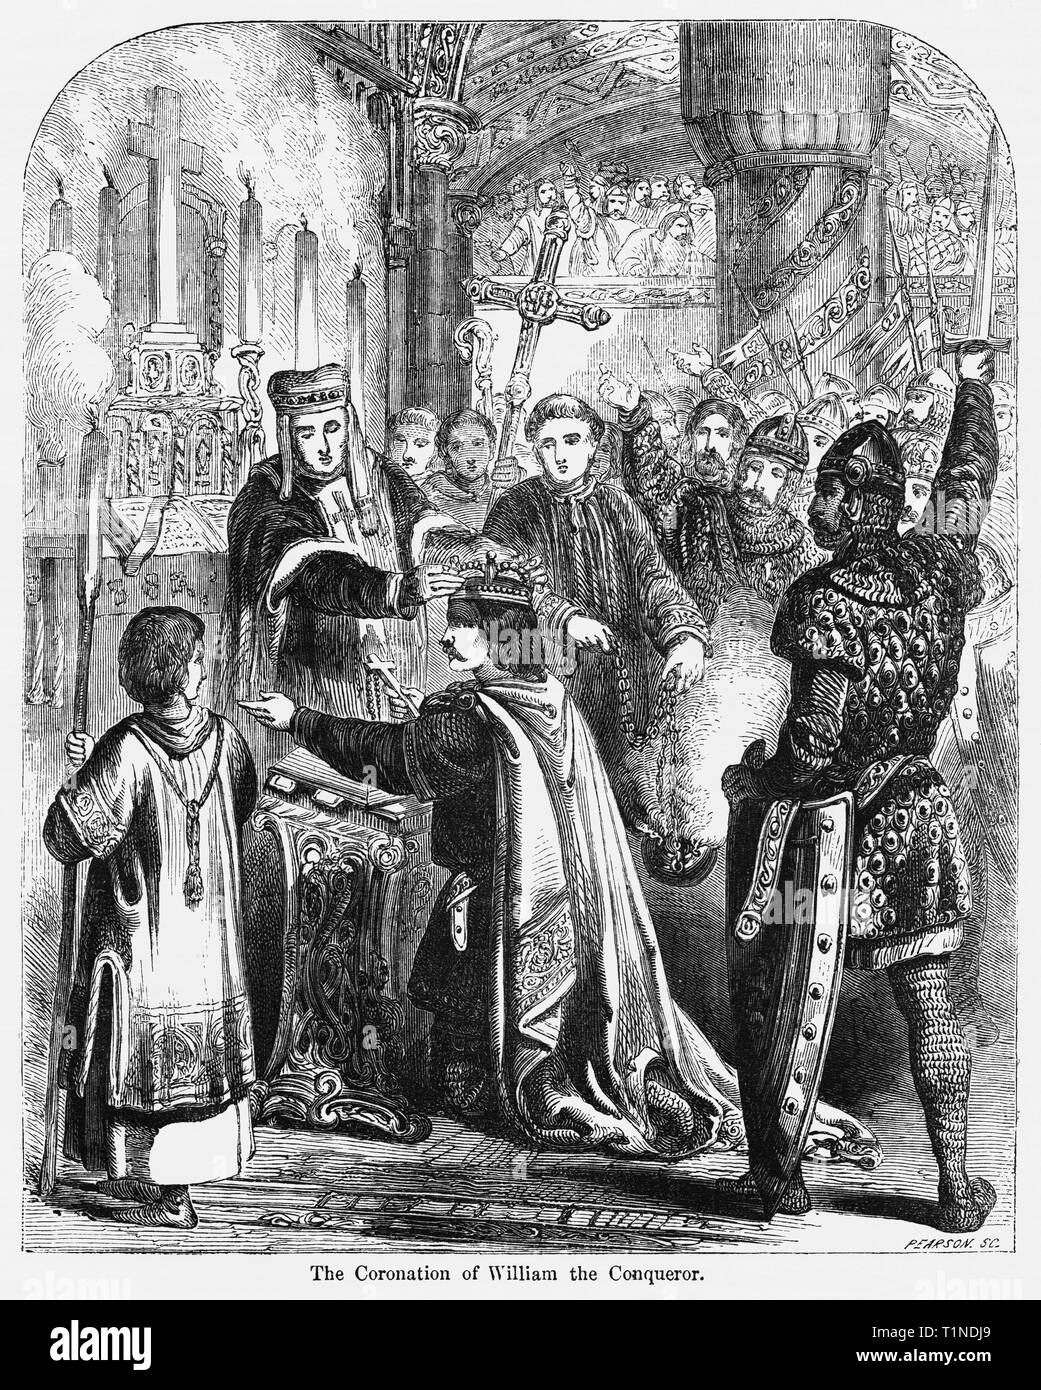 The Coronation of William the Conqueror, Illustration from John Cassell's Illustrated History of England, Vol. I from the earliest period to the reign of Edward the Fourth, Cassell, Petter and Galpin, 1857 - Stock Image